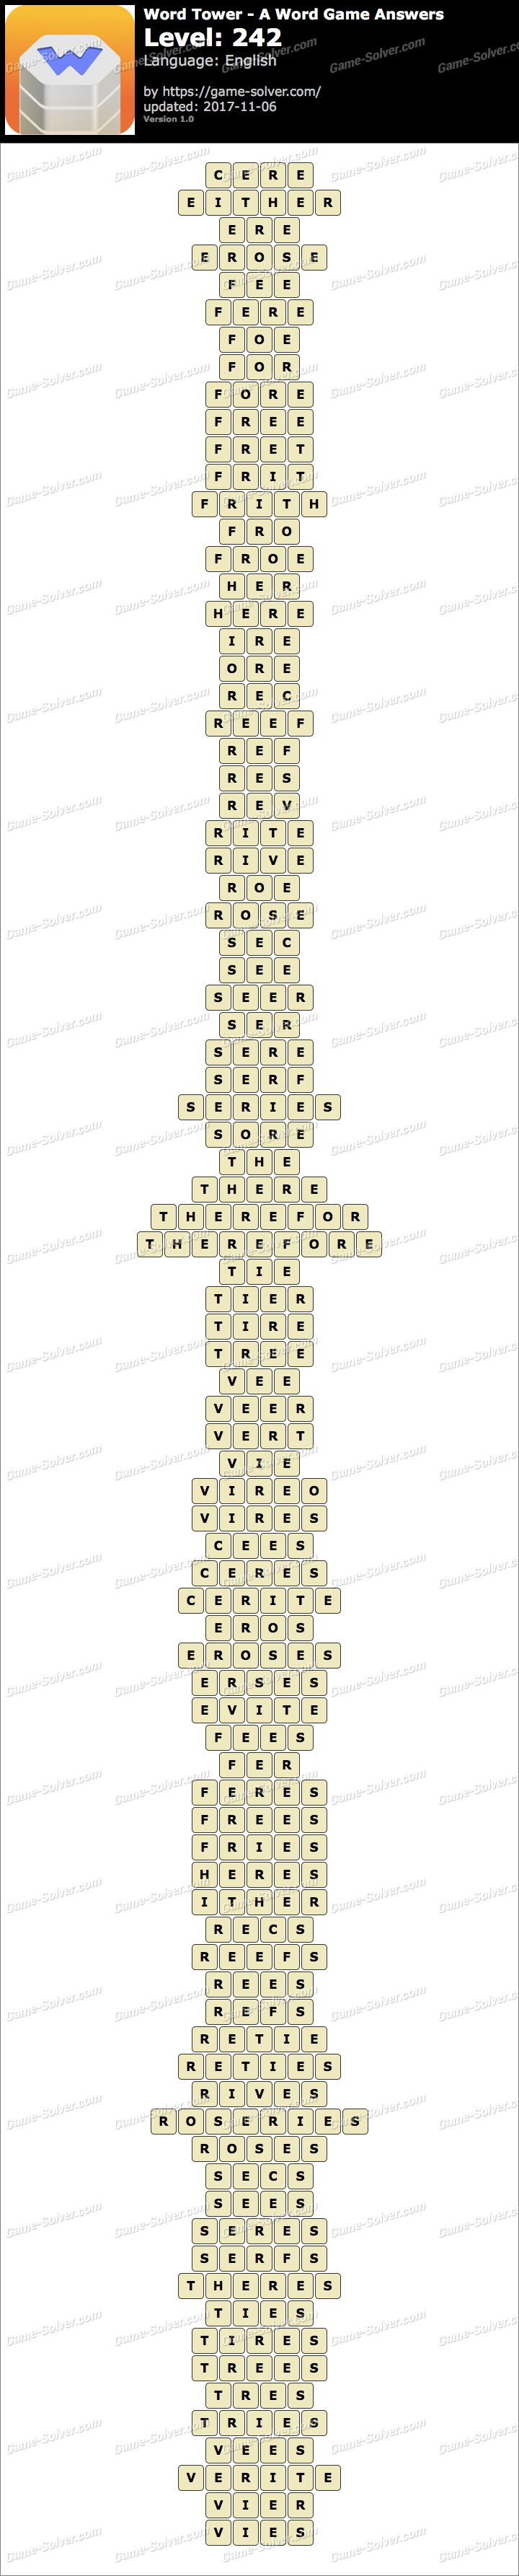 Word Tower Level 242 Answers